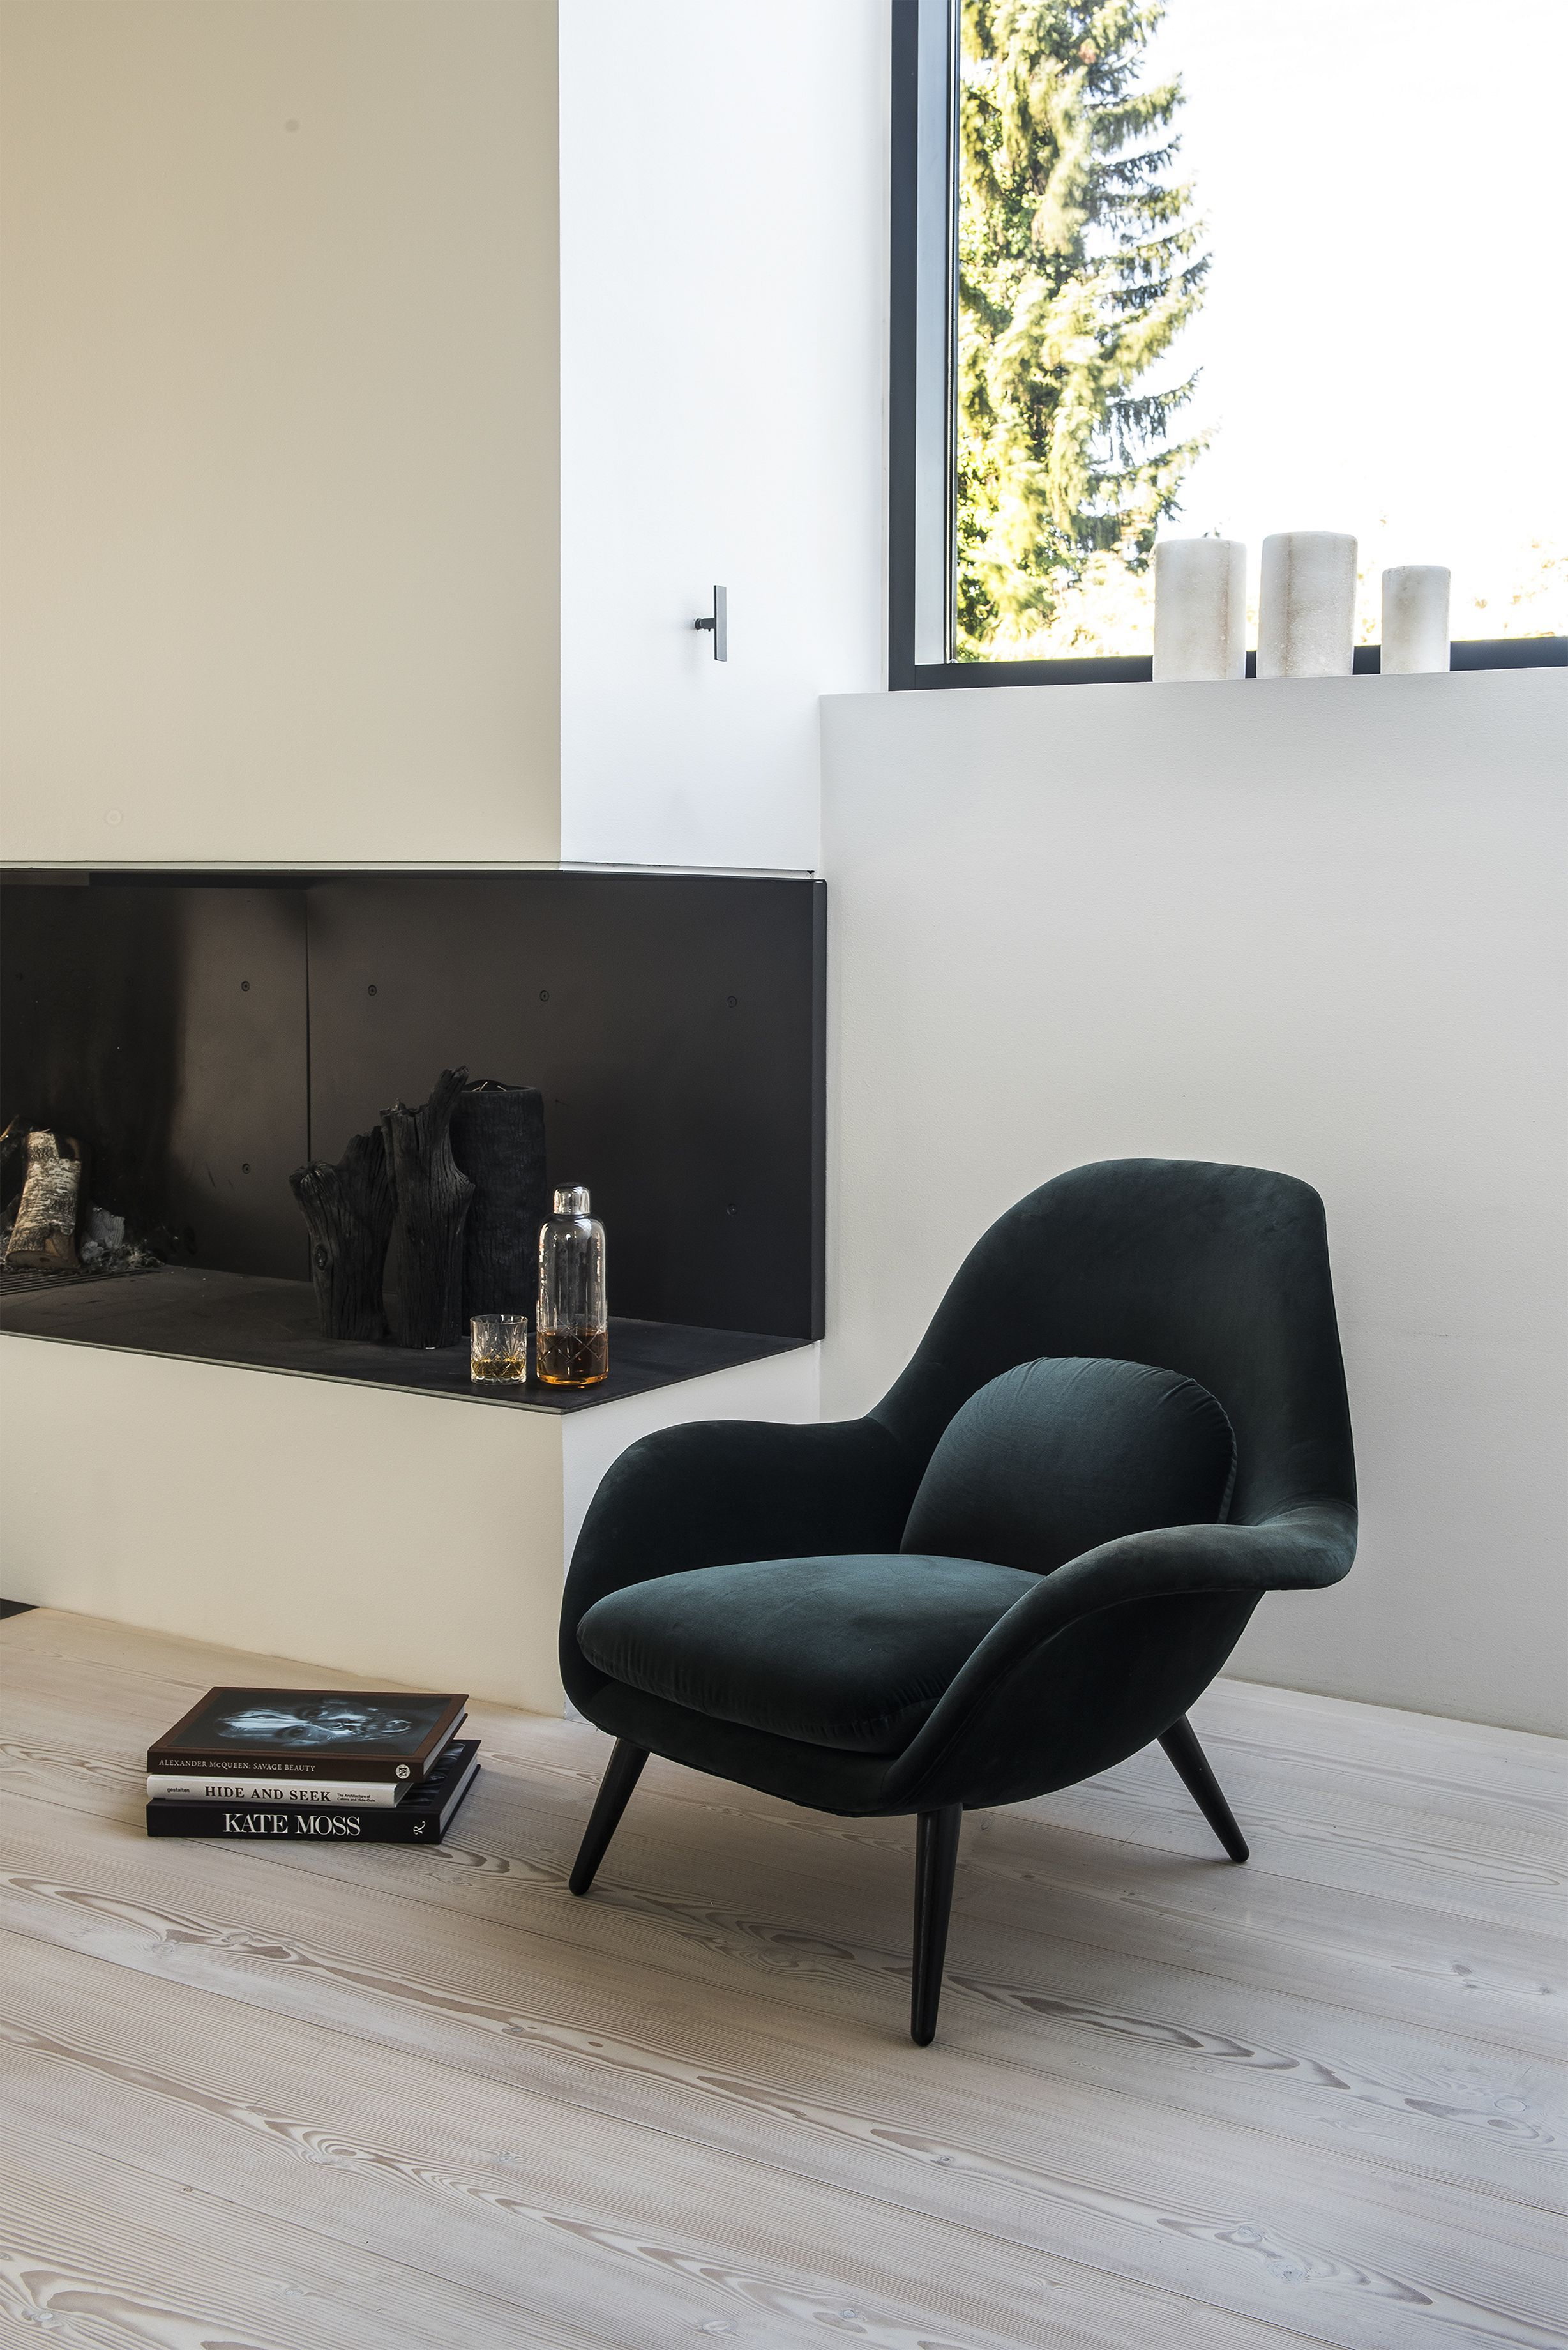 danish living room furniture ideas on how to decorate in an apartment 73 awesome design https www futuristarchitecture com